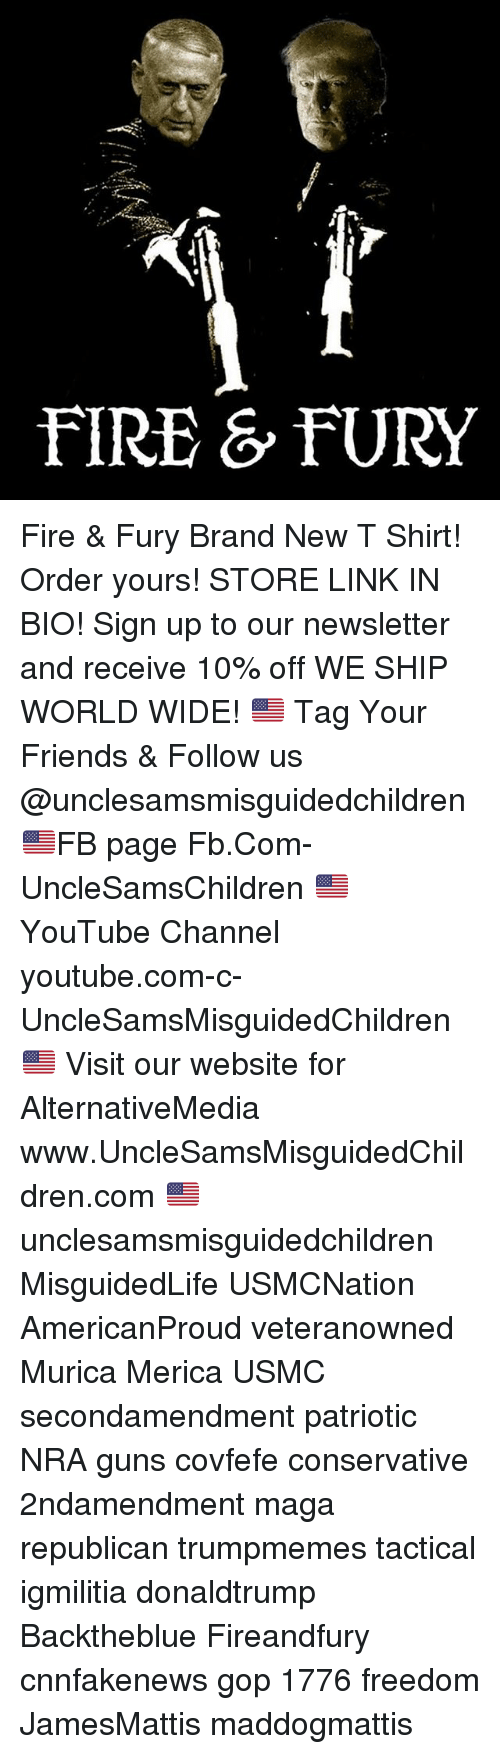 channeling: FIRE & FURY Fire & Fury Brand New T Shirt! Order yours! STORE LINK IN BIO! Sign up to our newsletter and receive 10% off WE SHIP WORLD WIDE! 🇺🇸 Tag Your Friends & Follow us @unclesamsmisguidedchildren 🇺🇸FB page Fb.Com-UncleSamsChildren 🇺🇸YouTube Channel youtube.com-c-UncleSamsMisguidedChildren 🇺🇸 Visit our website for AlternativeMedia www.UncleSamsMisguidedChildren.com 🇺🇸 unclesamsmisguidedchildren MisguidedLife USMCNation AmericanProud veteranowned Murica Merica USMC secondamendment patriotic NRA guns covfefe conservative 2ndamendment maga republican trumpmemes tactical igmilitia donaldtrump Backtheblue Fireandfury cnnfakenews gop 1776 freedom JamesMattis maddogmattis